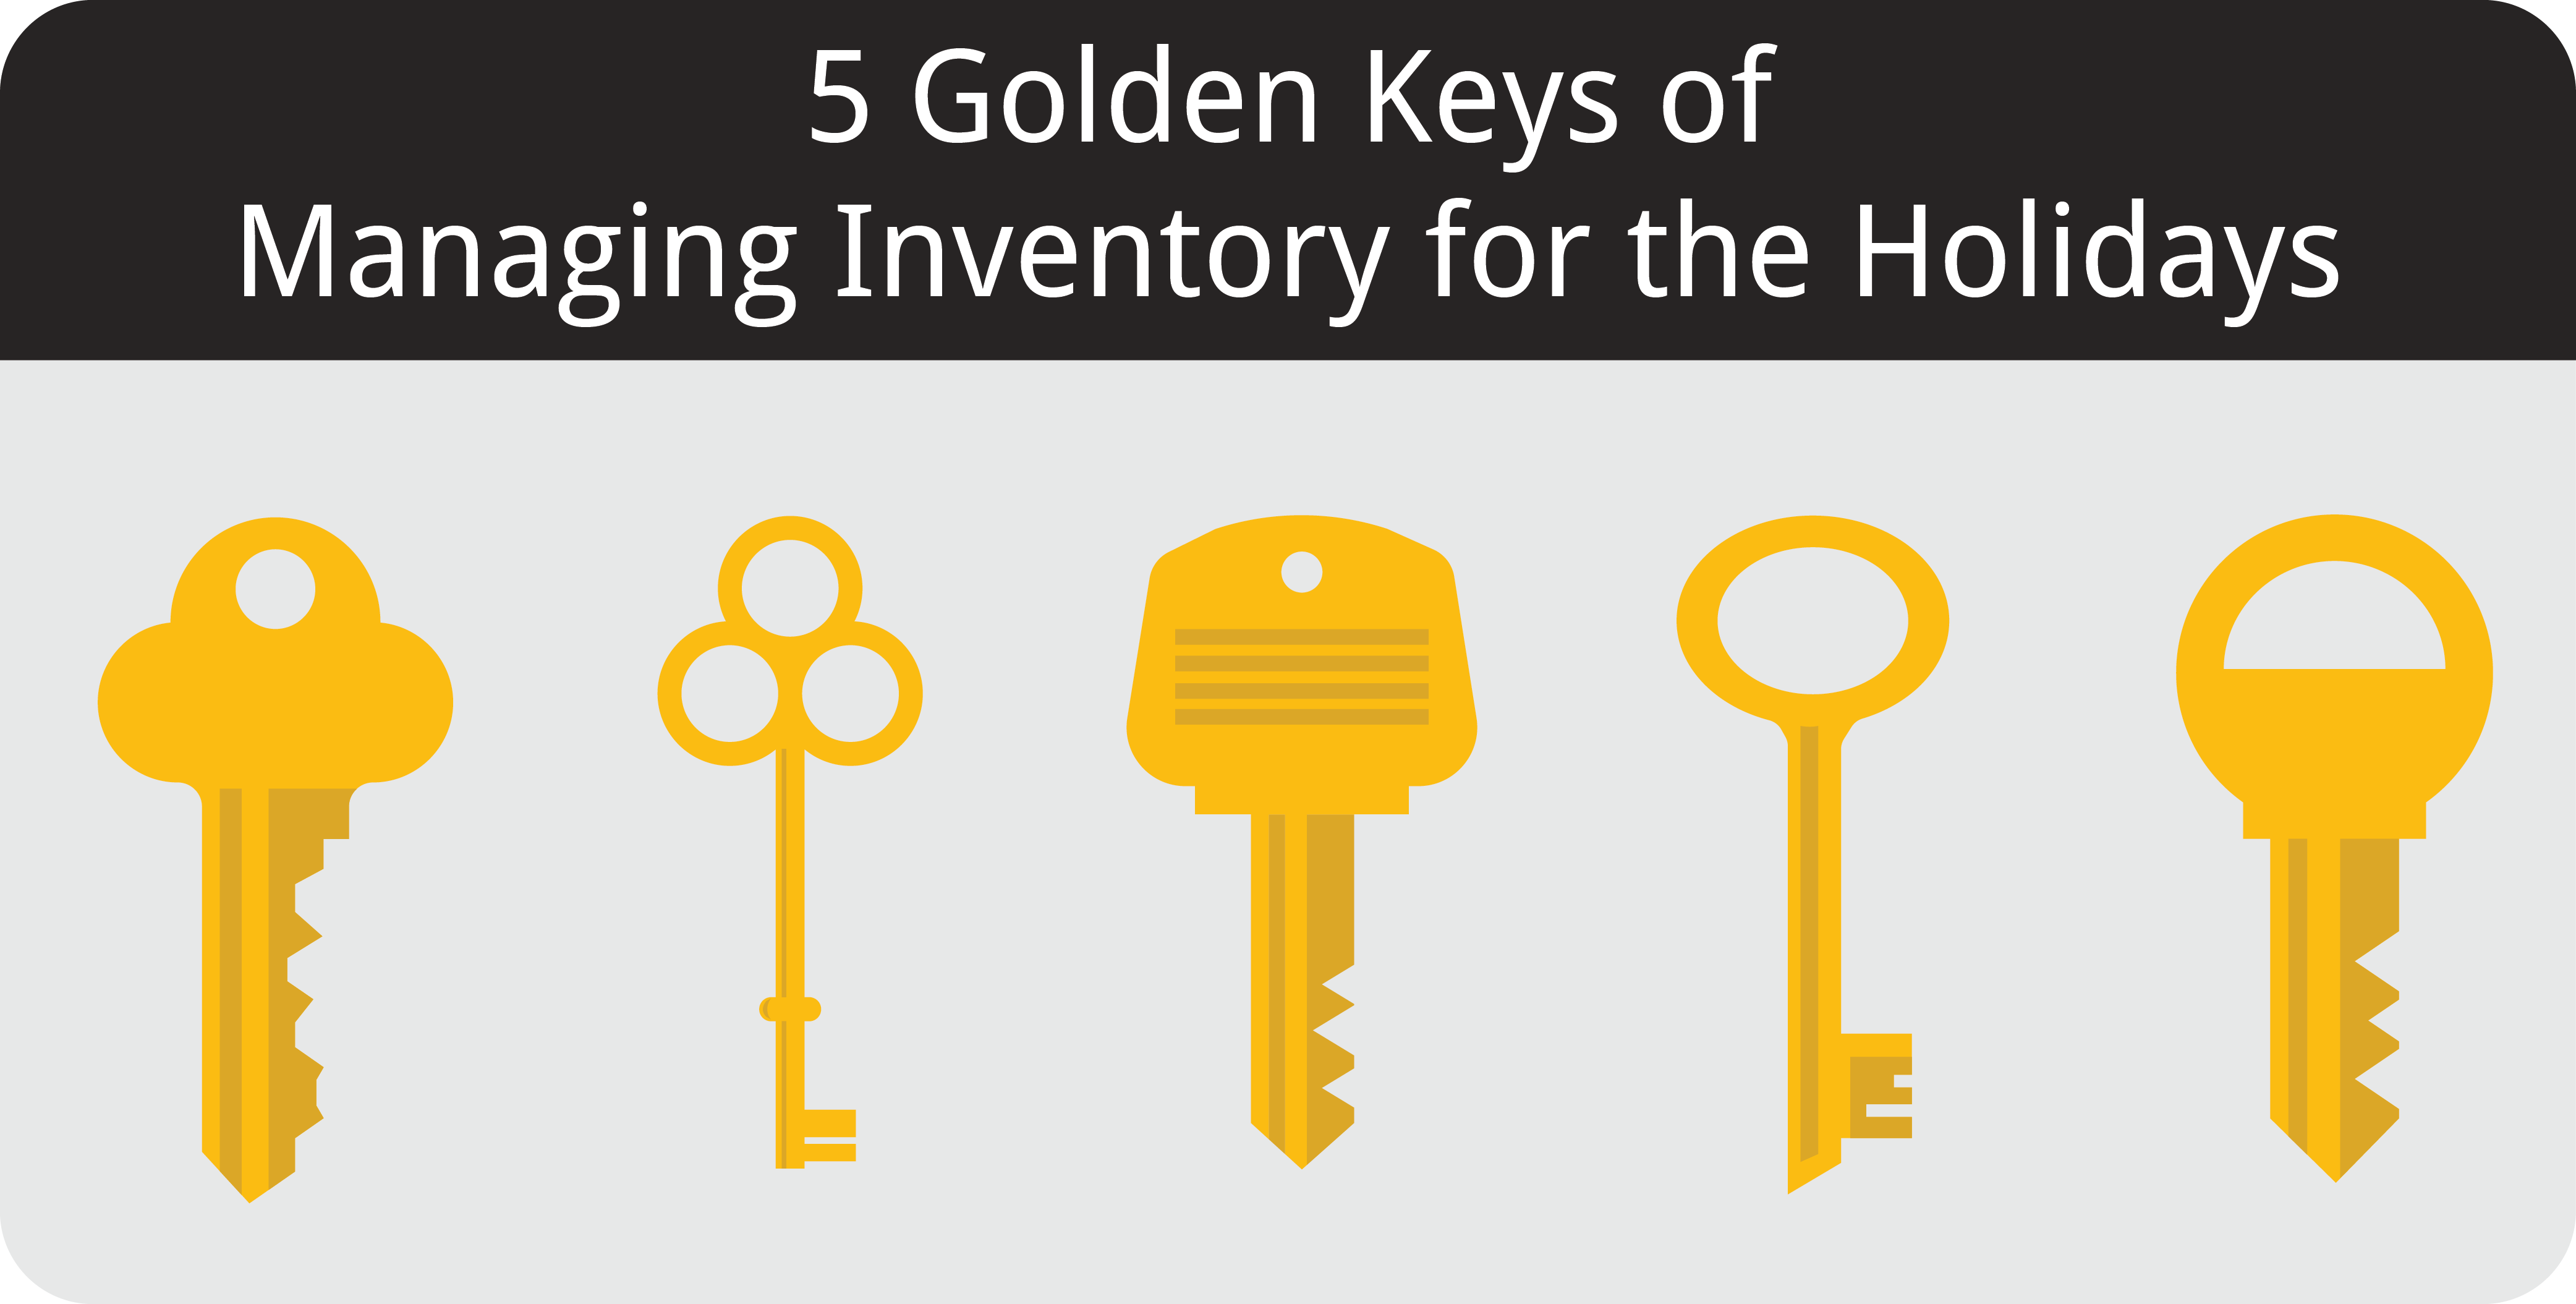 The 5 Golden Keys of Inventory Management around the Holidays - Featured Image